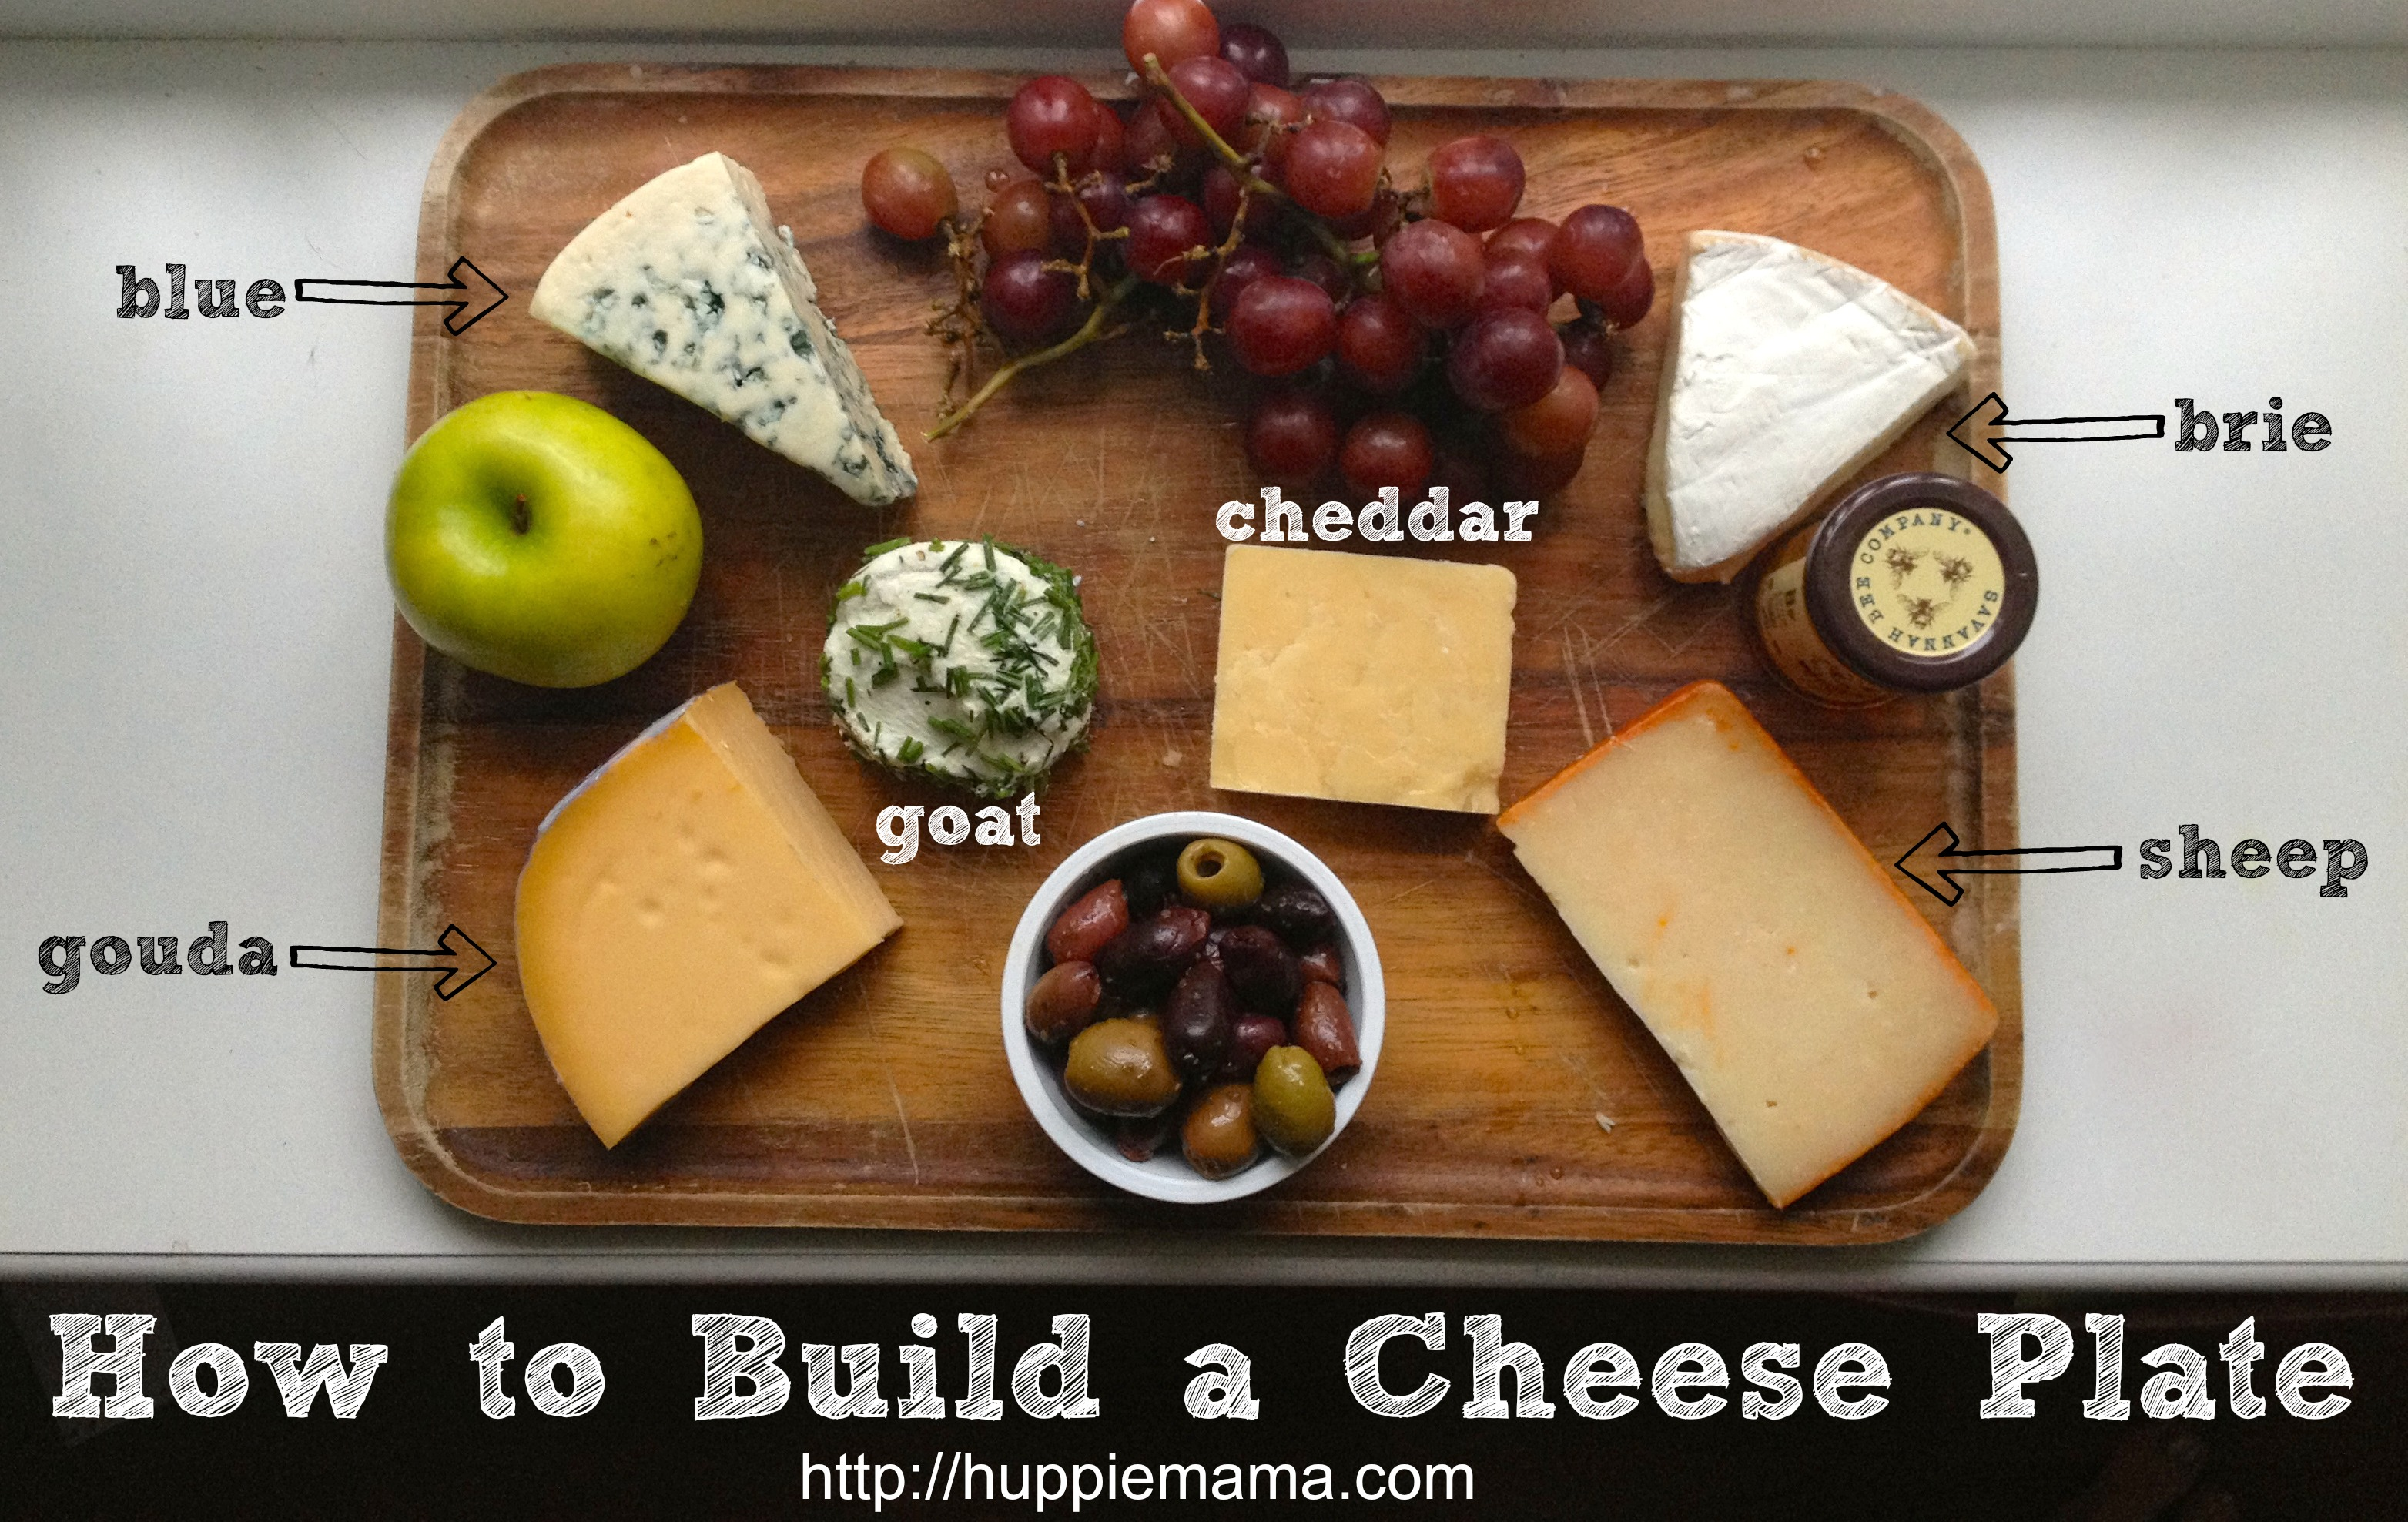 & How to Build a Cheese Plate - Our Potluck Family